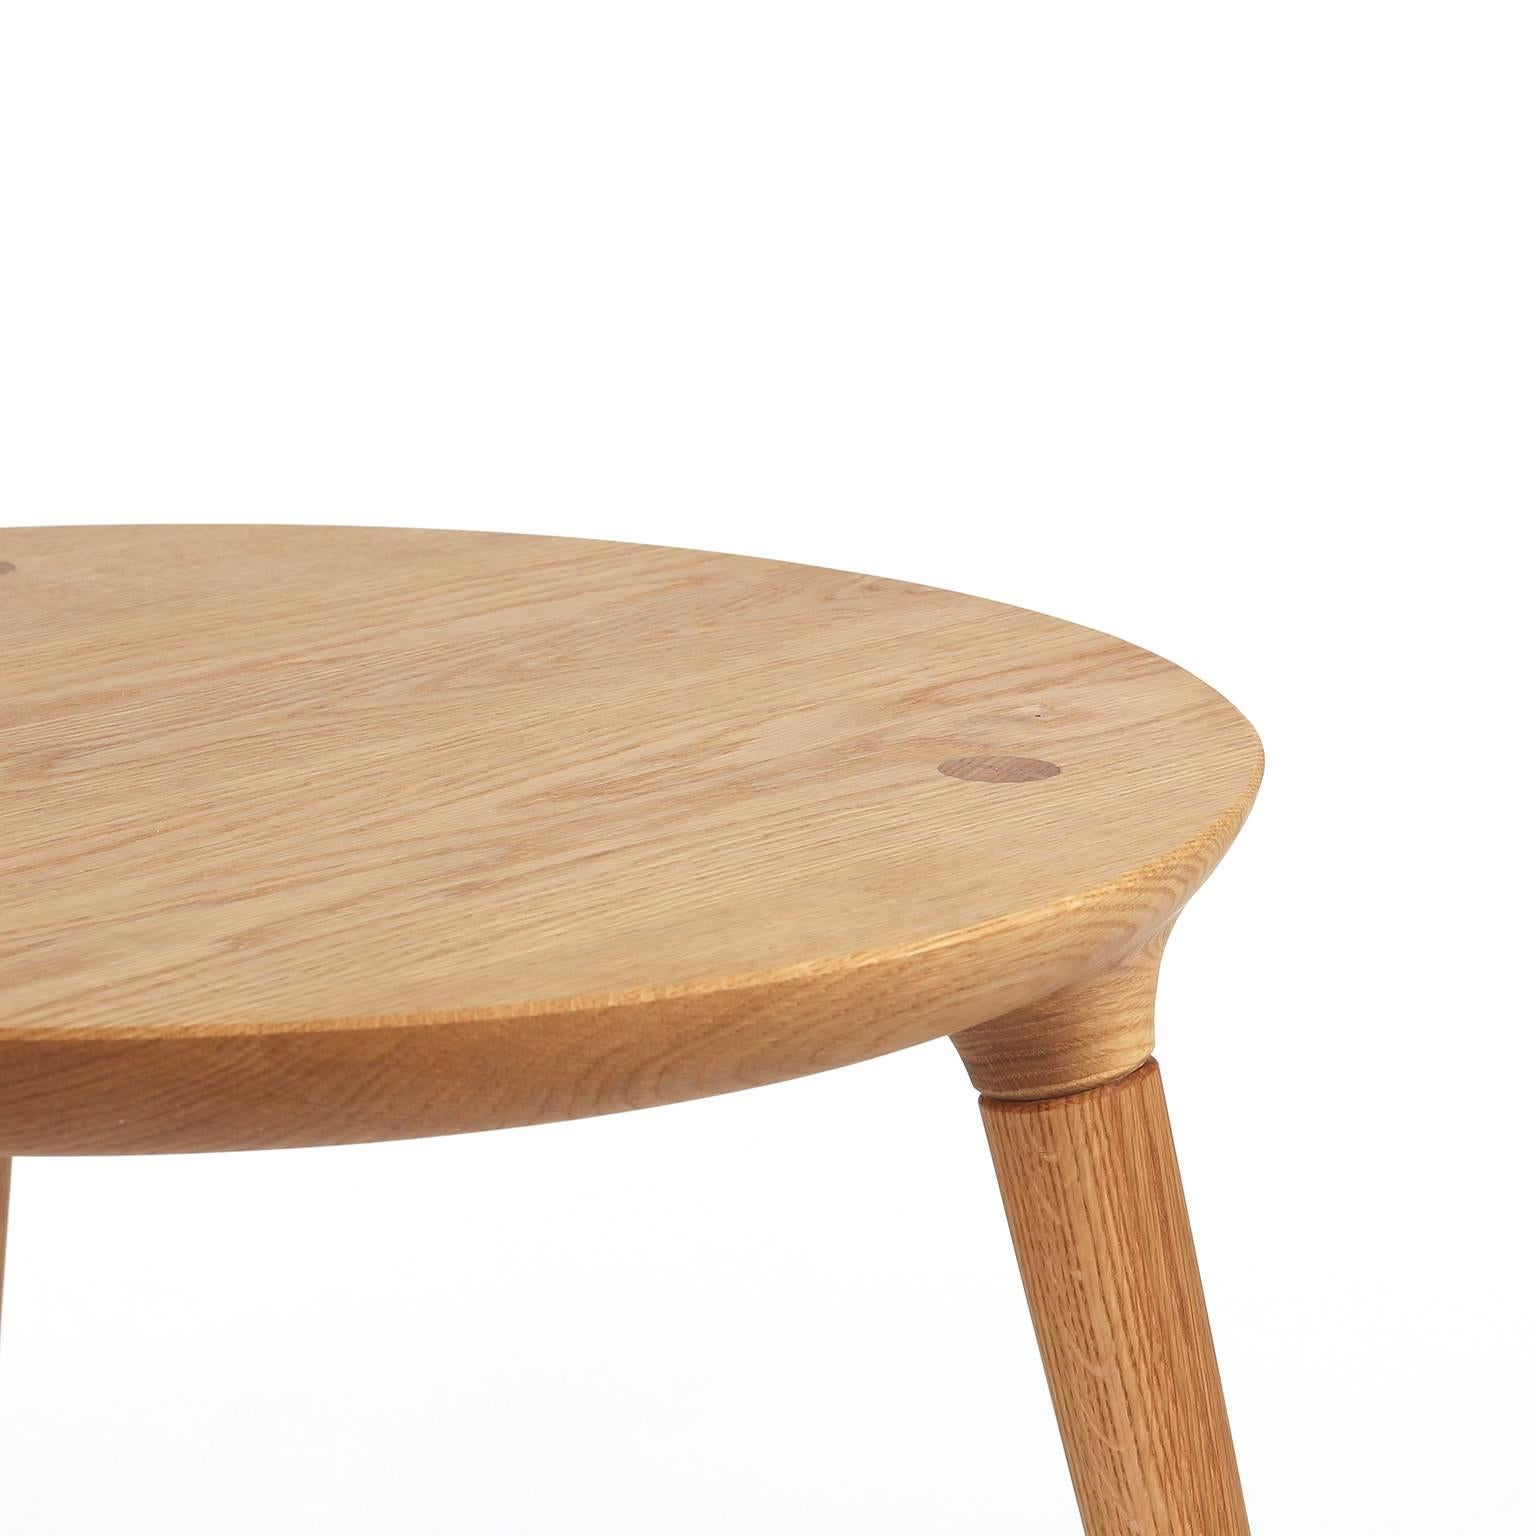 Coventry Side Table With Windsor Joinery In Oak By Studio Dunn For Sale At  1stdibs